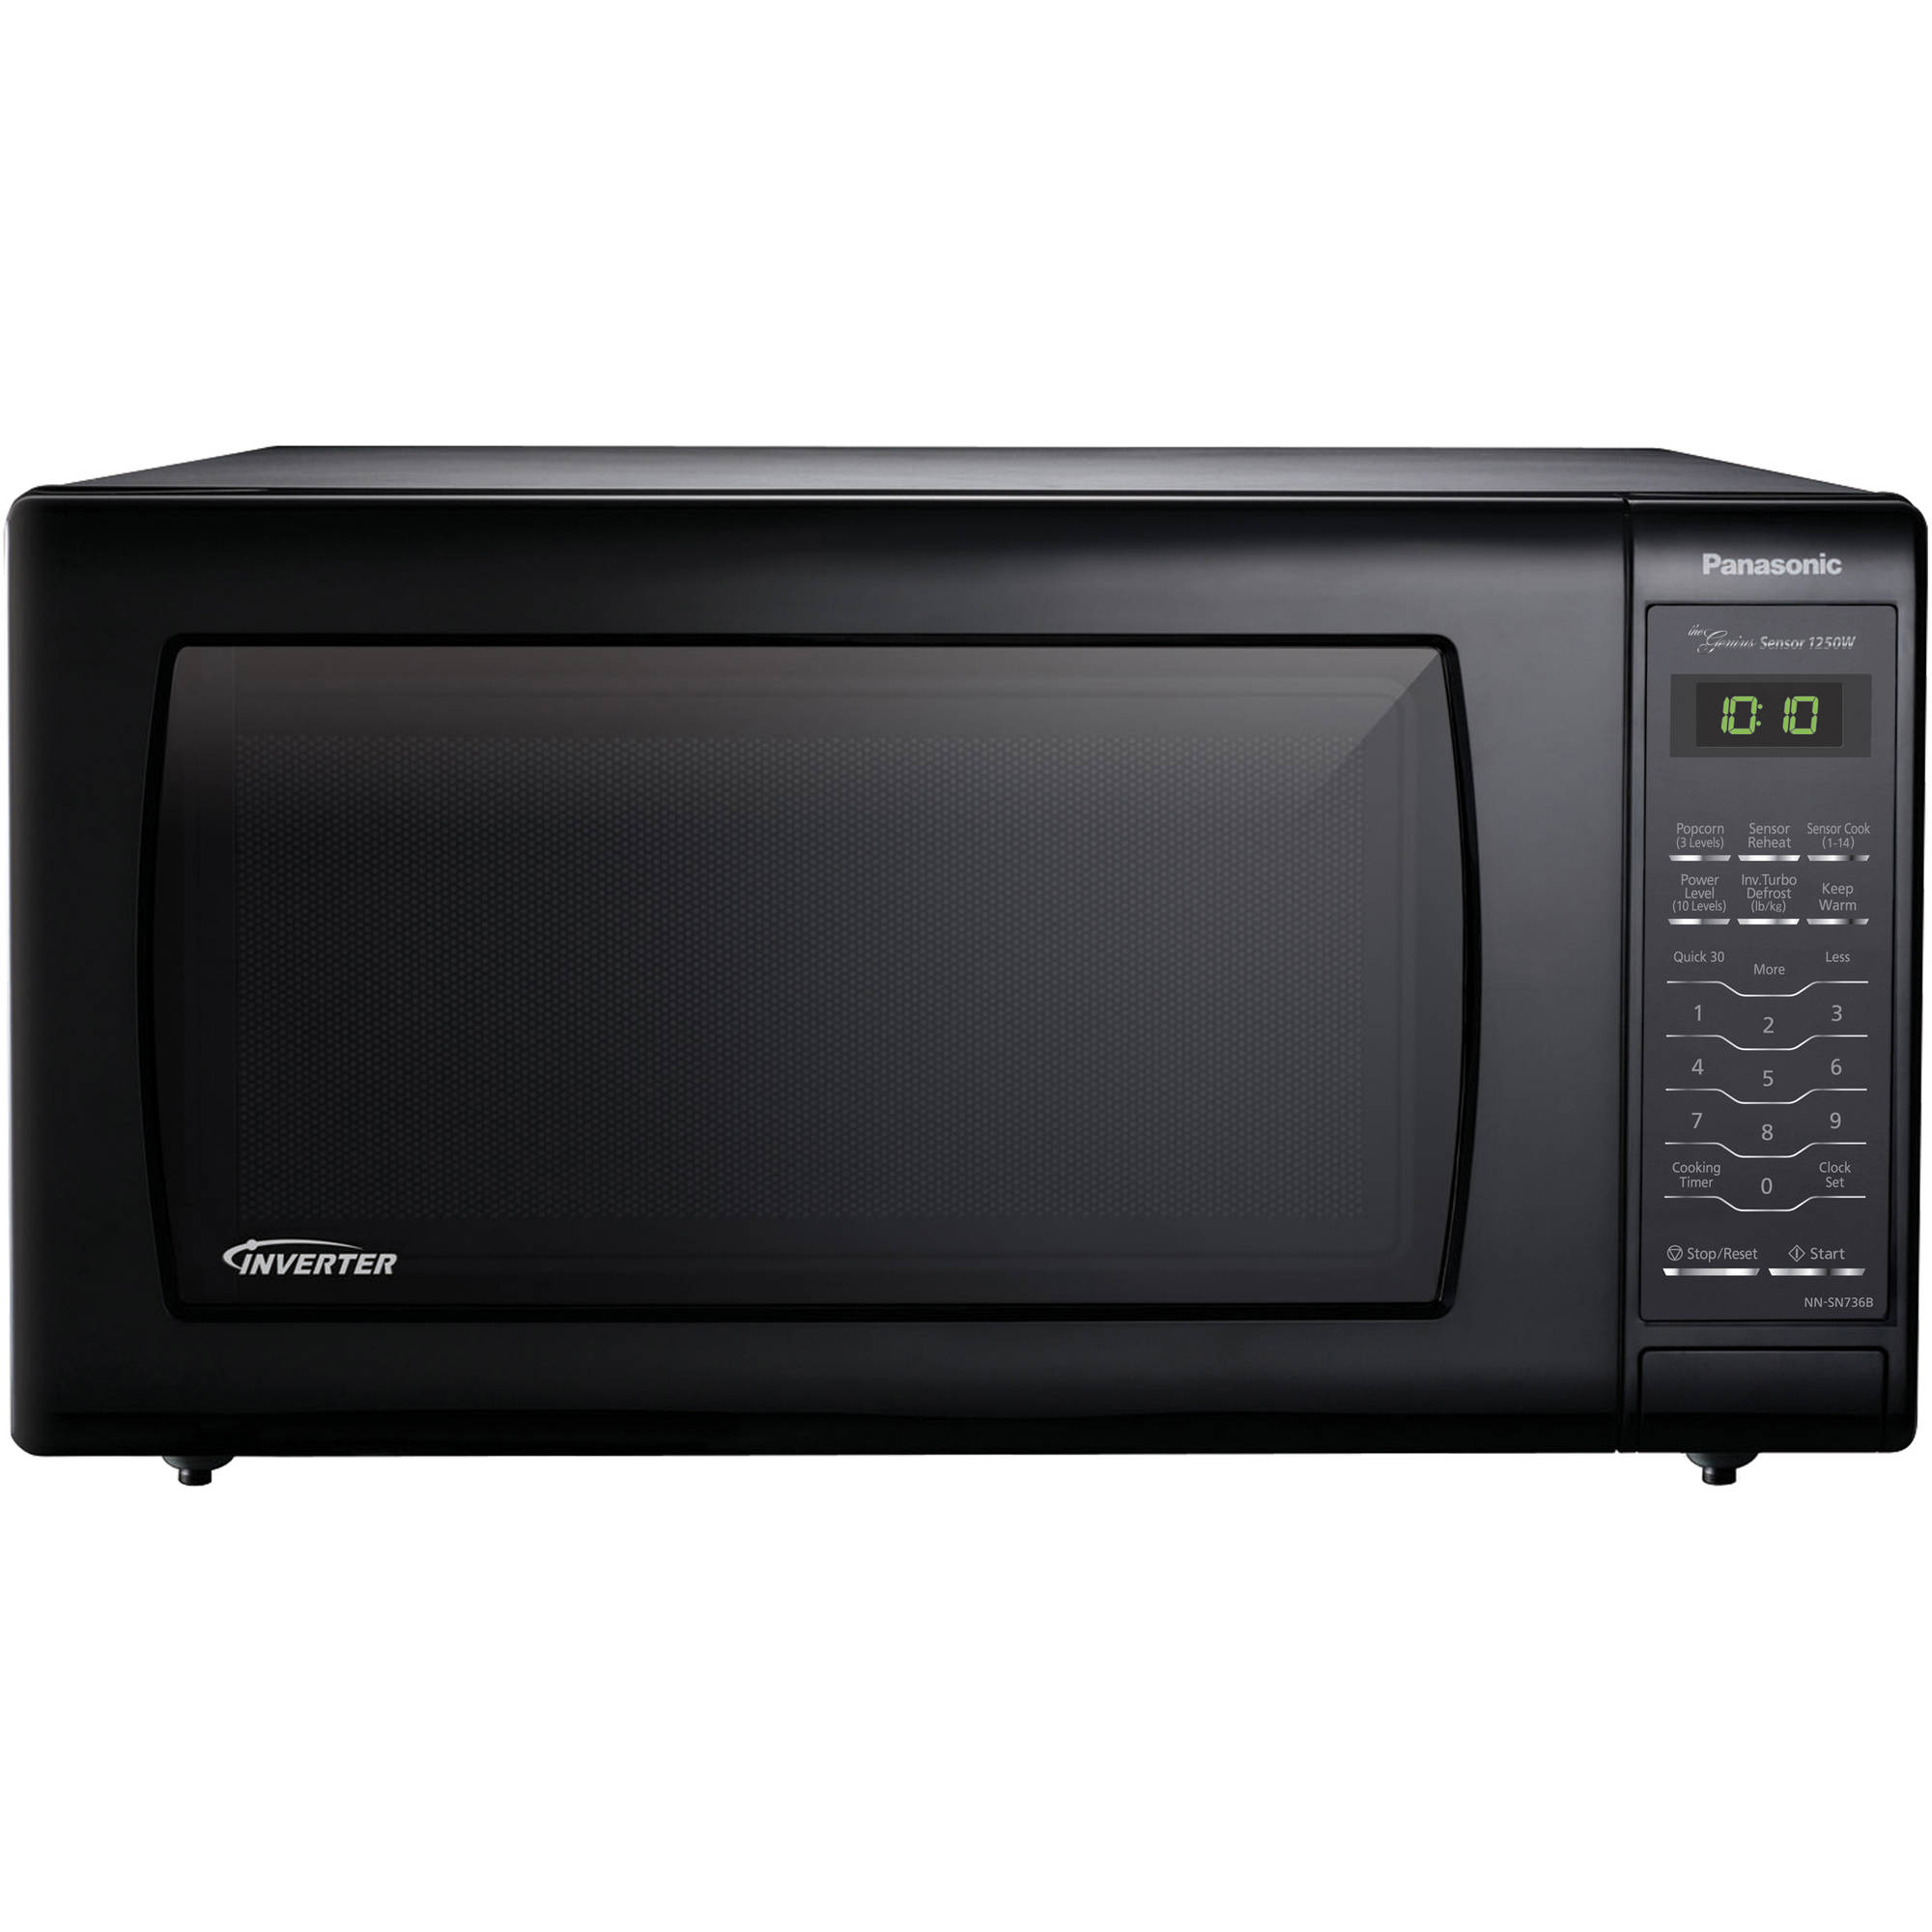 ... Ft. Countertop Microwave Oven with Inverter Technology - Black eBay